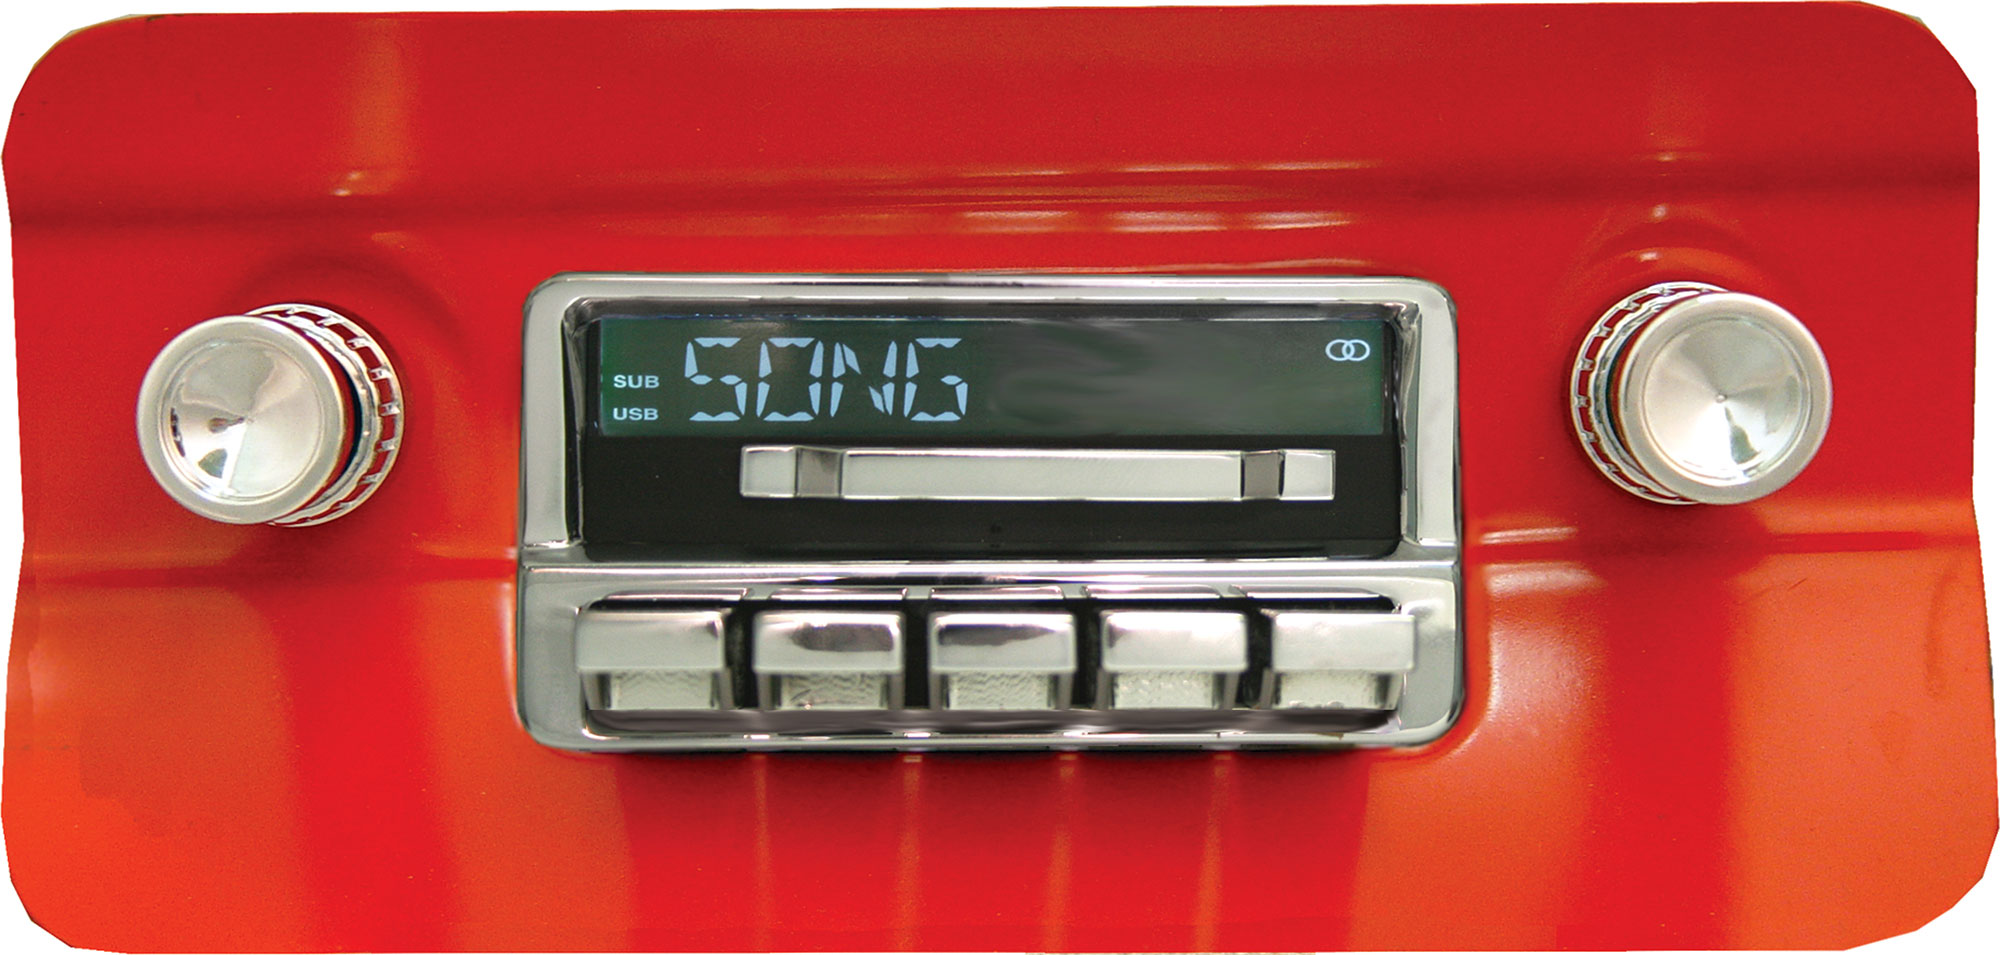 classic looking car stereo